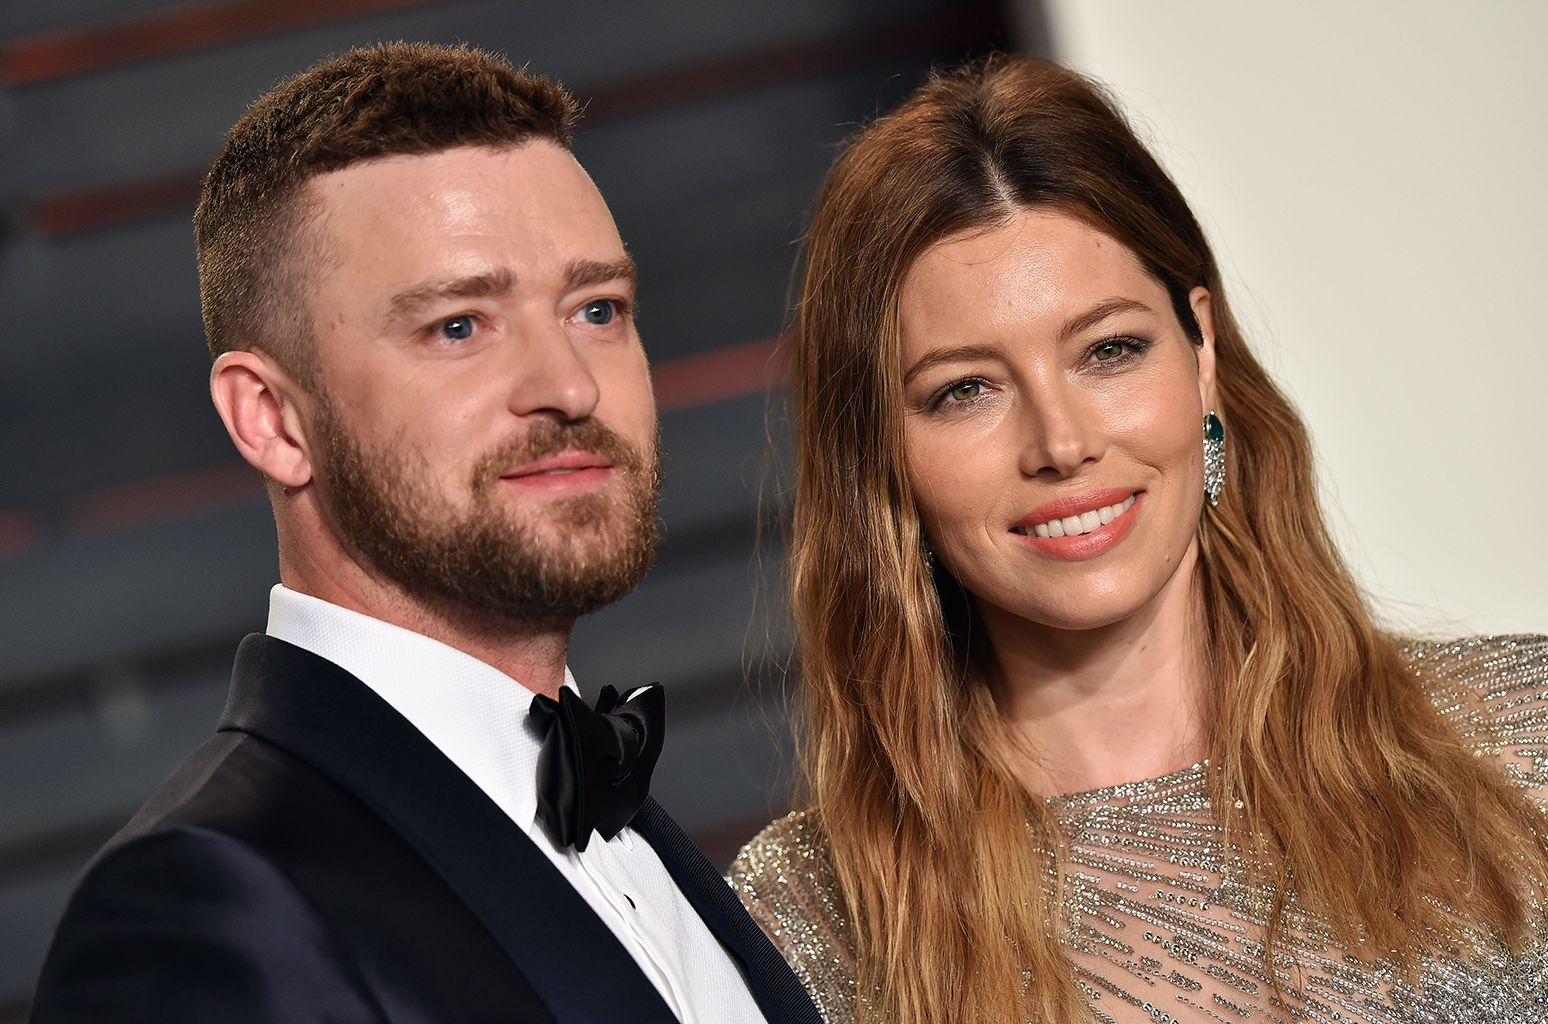 BEVERLY HILLS, CA - FEBRUARY 28: Recording artist Justin Timberlake and actress Jessica Biel arrive at the 2016 Vanity Fair Oscar Party Hosted By Graydon Carter at Wallis Annenberg Center for the Performing Arts on February 28, 2016 in Beverly Hills, California. (Photo by Axelle/Bauer-Griffin/FilmMagic)